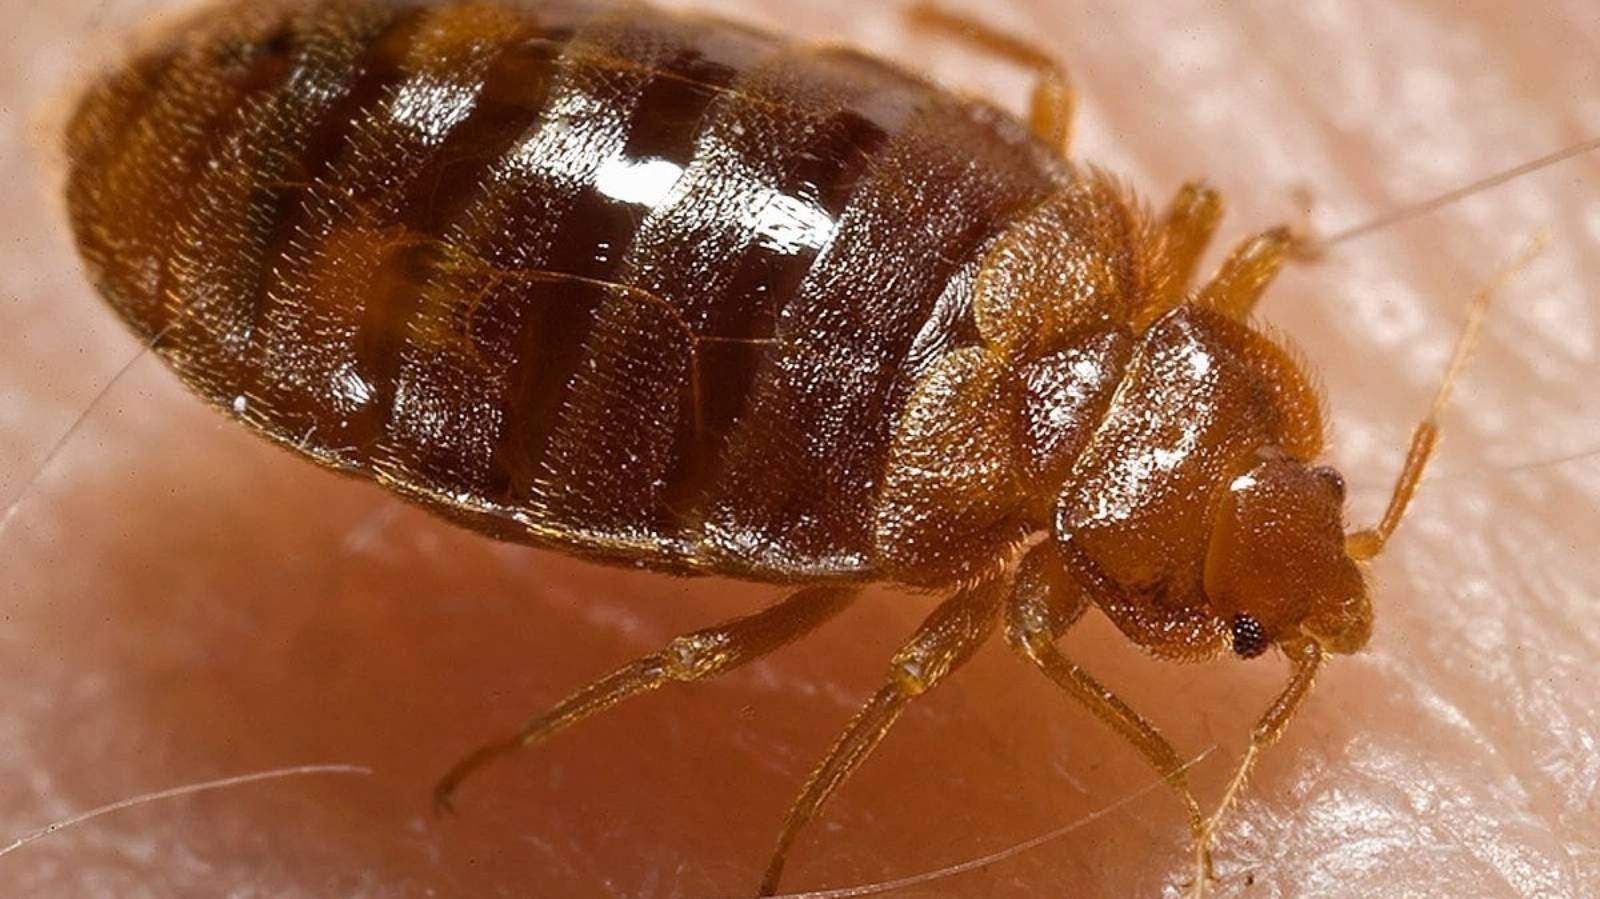 Horror at bed-bug infested DOC hut